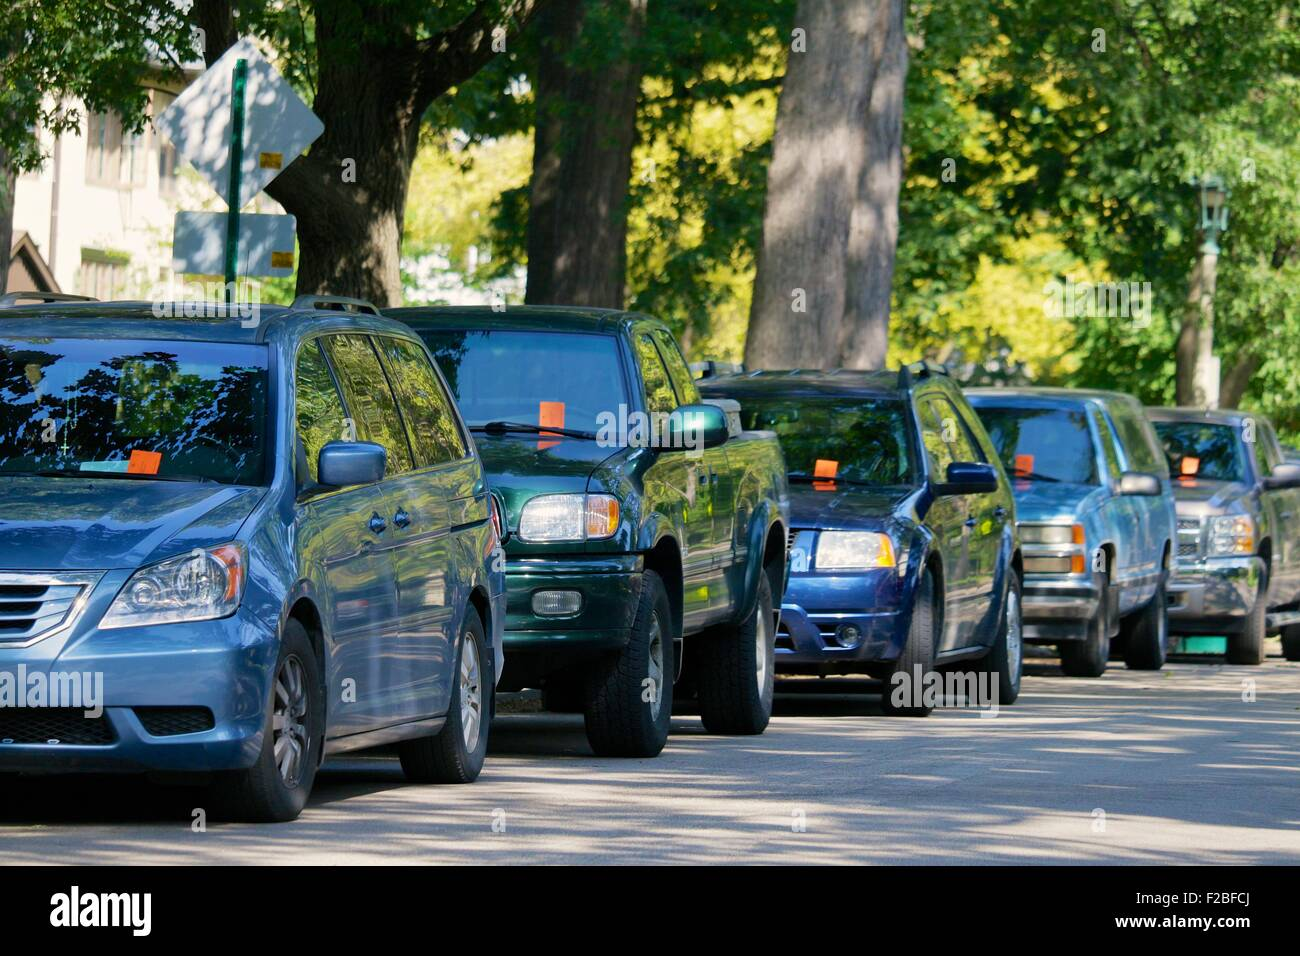 Oak Park, IL, USA. 15th September 2015. Five of the several cars tagged with parking tickets on north Kenilworth - Stock Image